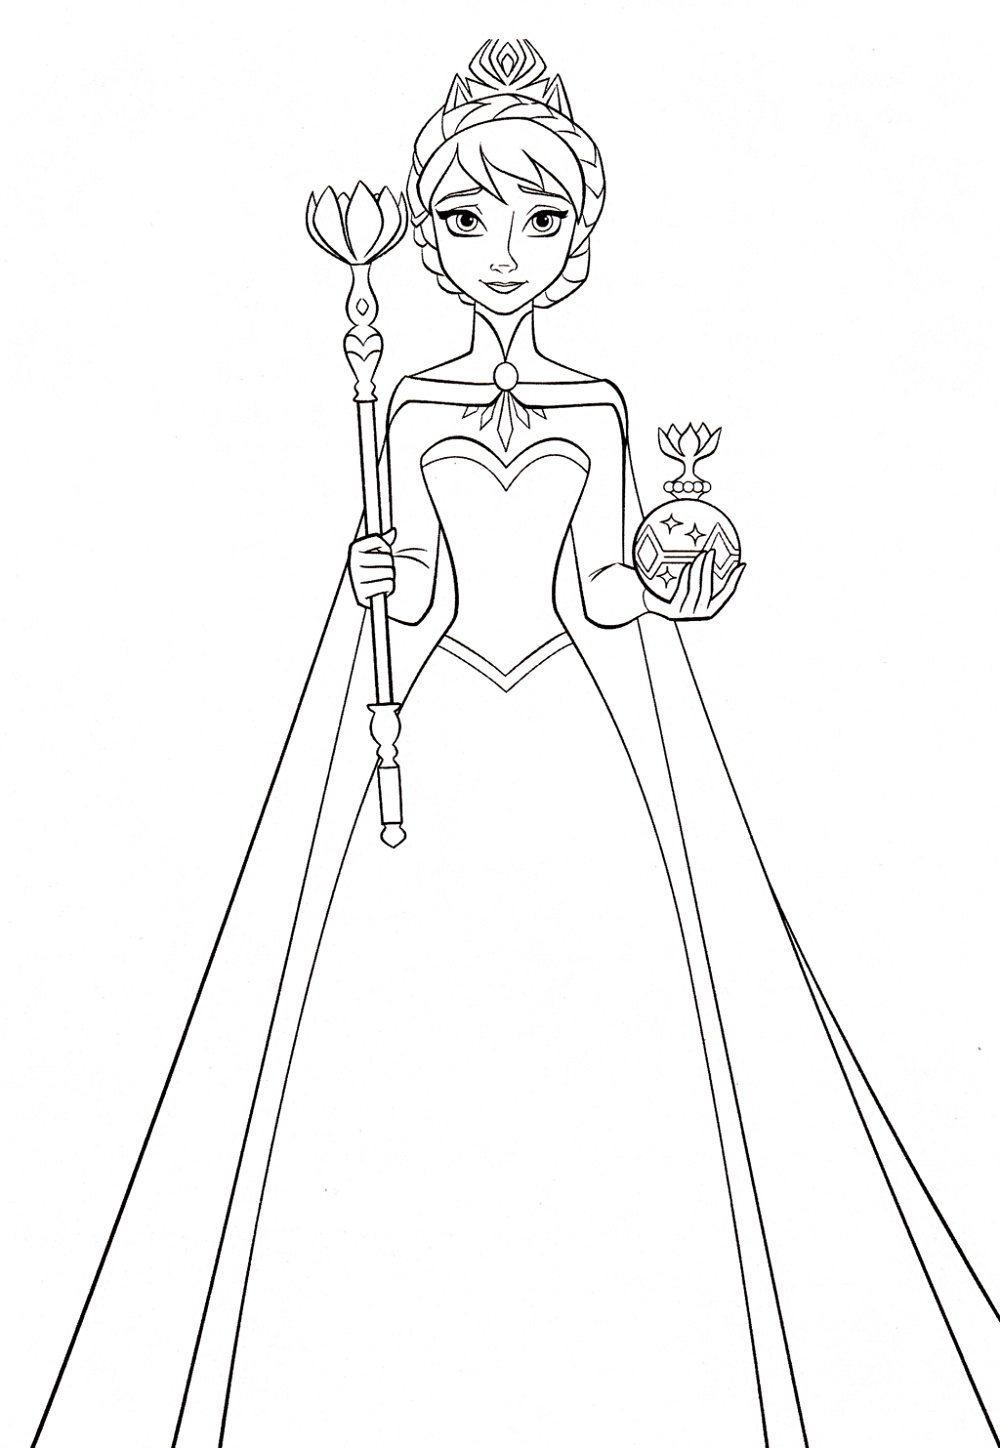 Free Printable Elsa Coloring Pages For Kids Best Coloring Pages For Kids Frozen Coloring Pages Elsa Coloring Pages Frozen Coloring